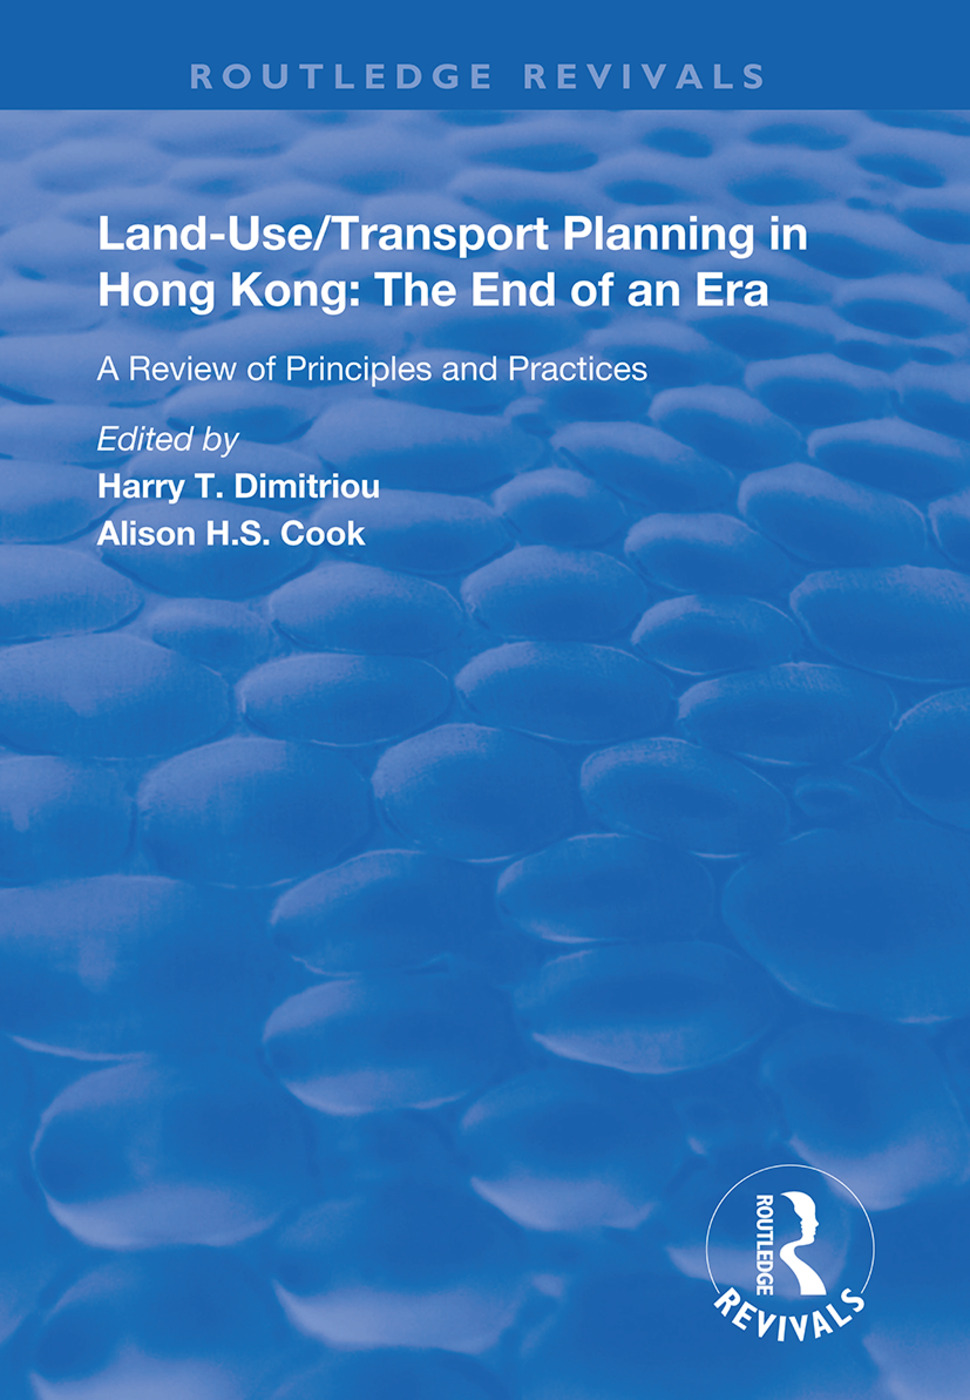 Land-use/Transport Planning in Hong Kong: A Review of Principles and Practices book cover